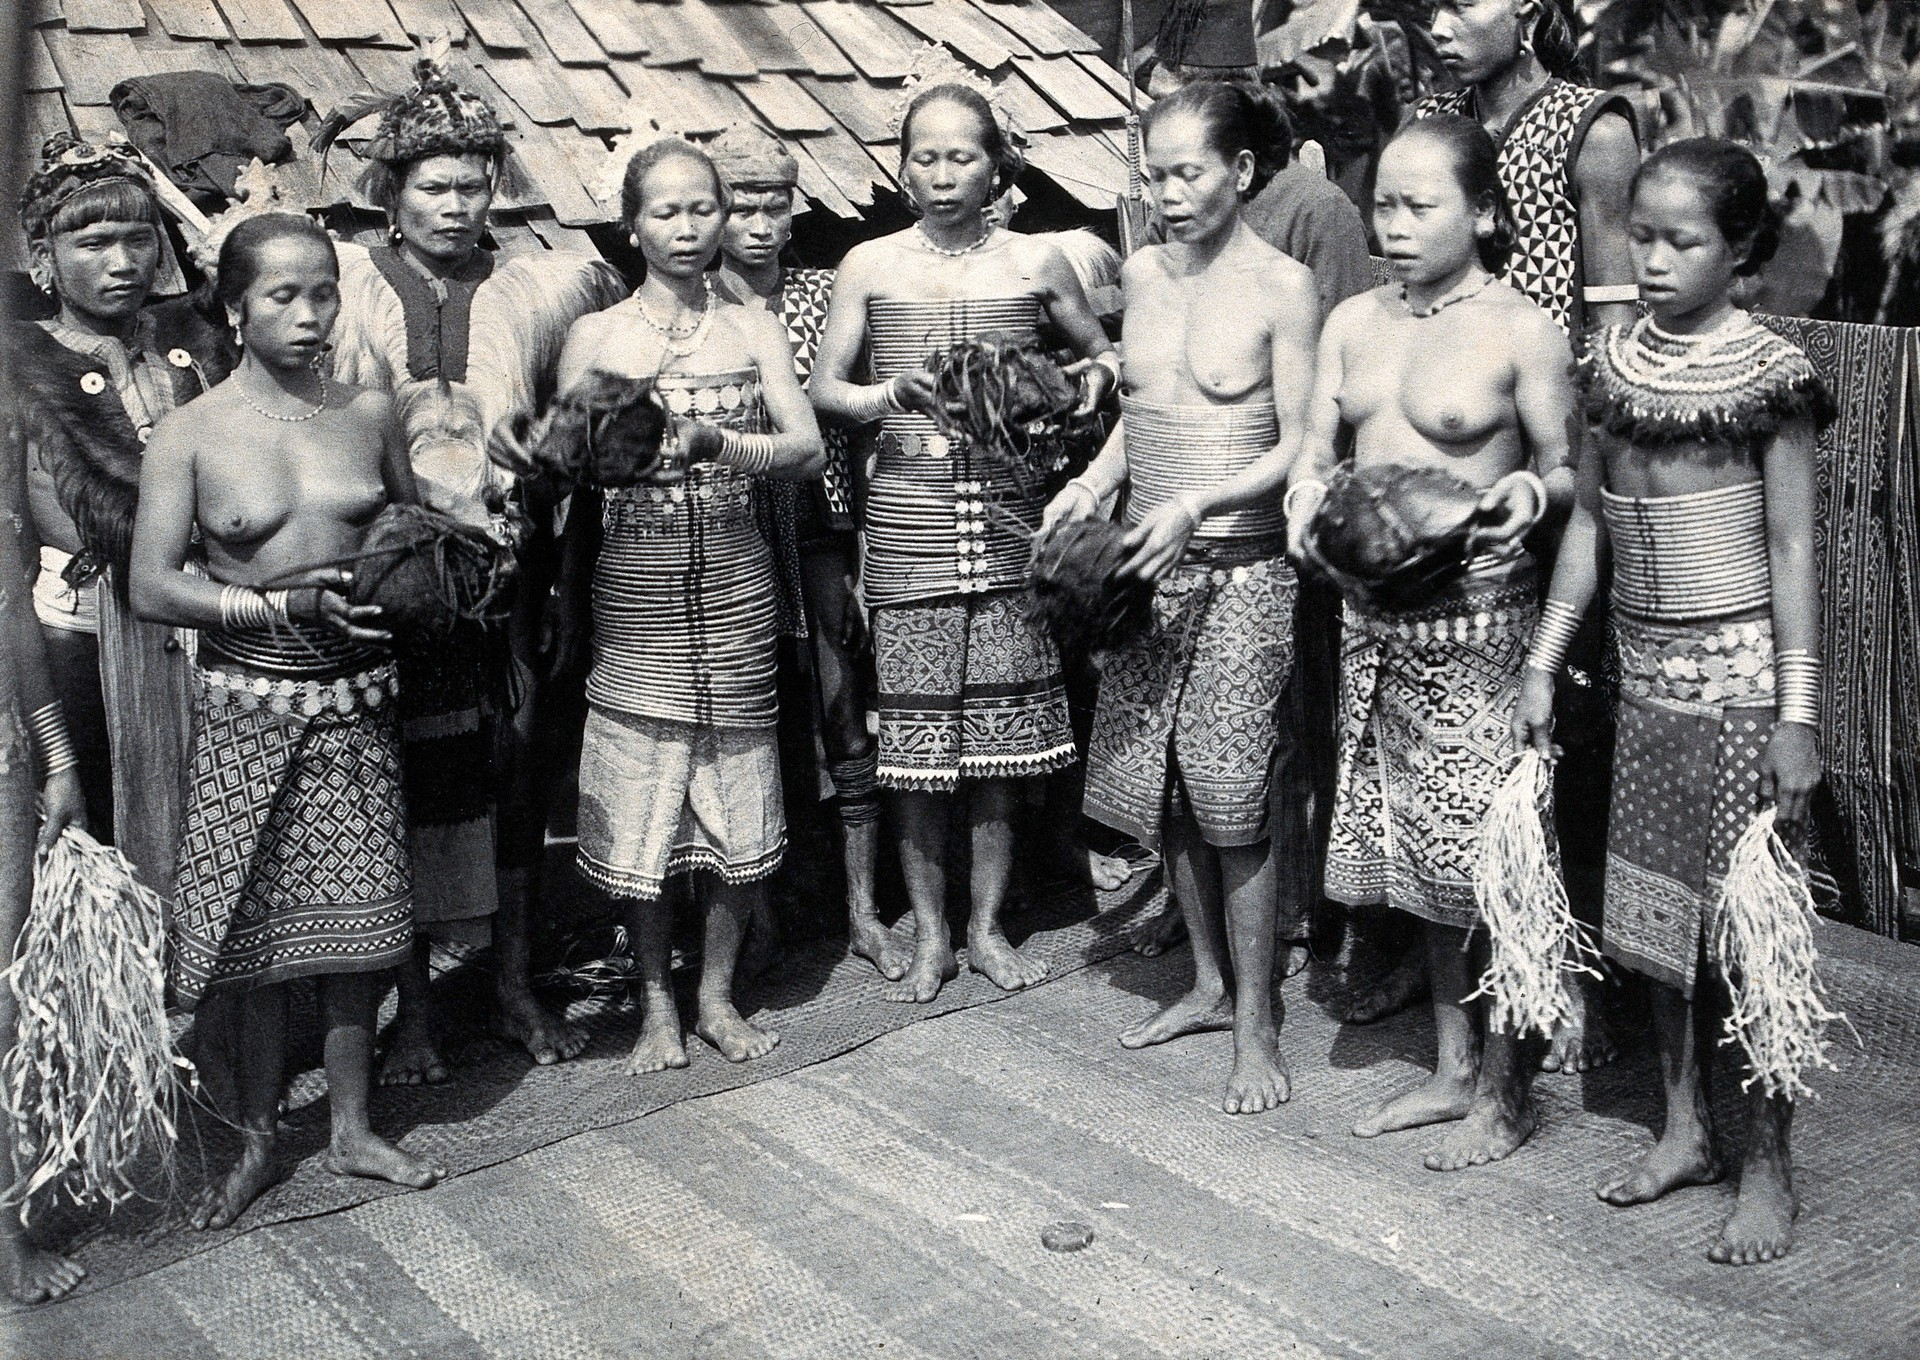 The Iban tribe or Sea Dayaks, legendary headhunters of Borneo